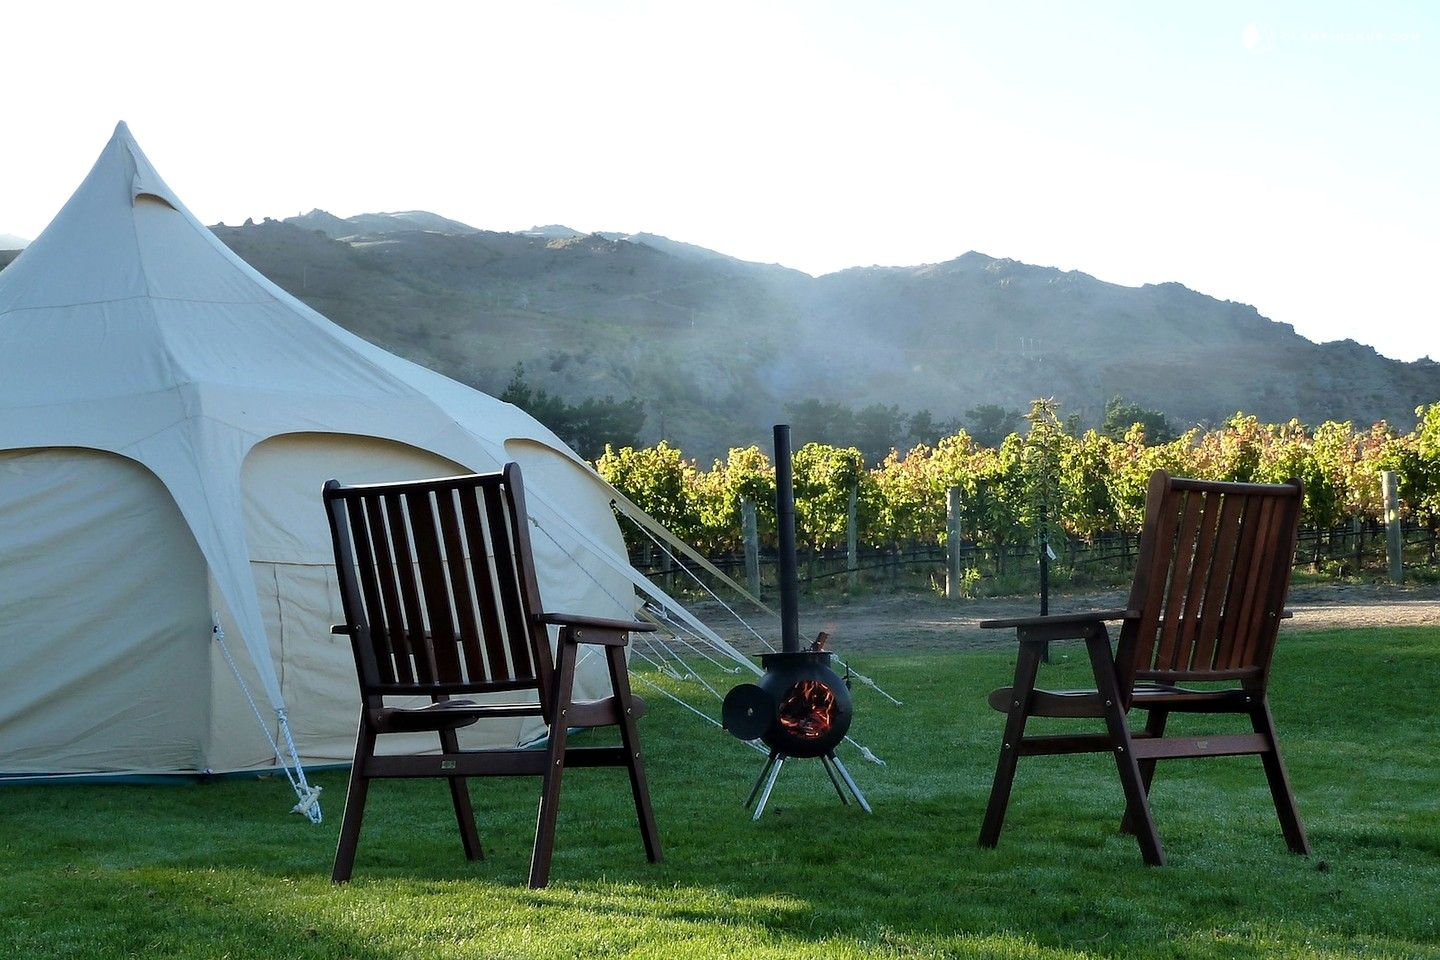 Luxury Tent Camping In New Zealand Glampers Can Travel To Whichever Location They Desire Zealands Backcountry These Luxurious Portable Tents